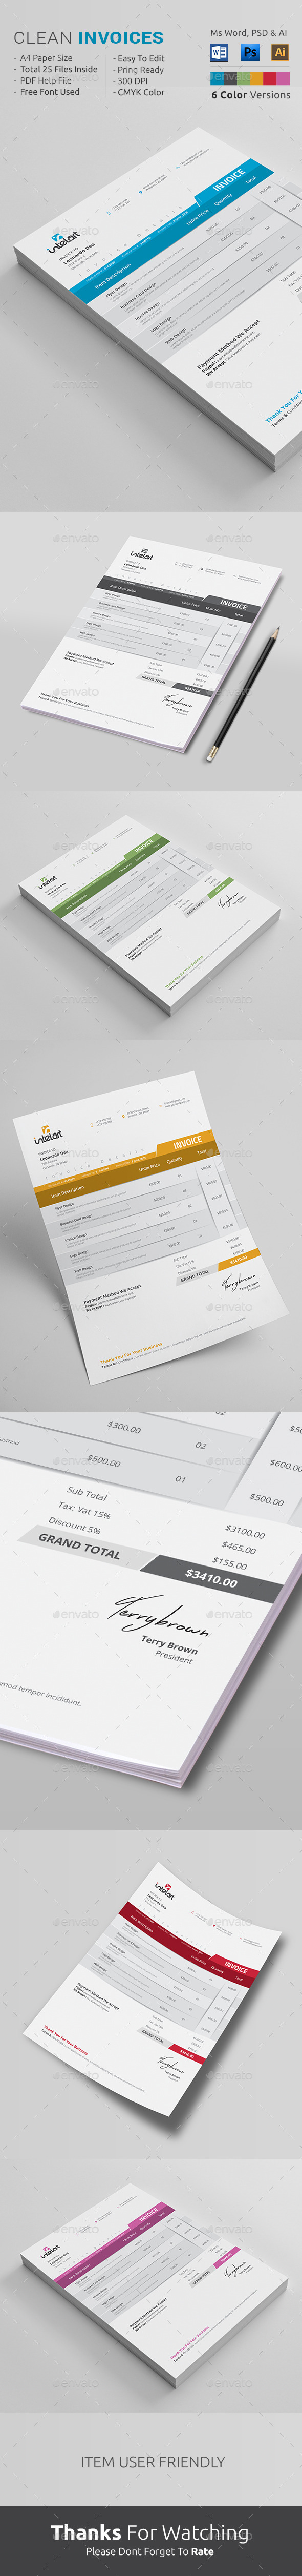 Proposal Template Microsoft Word Invoice Excel  Template Proposal Templates And Print Templates